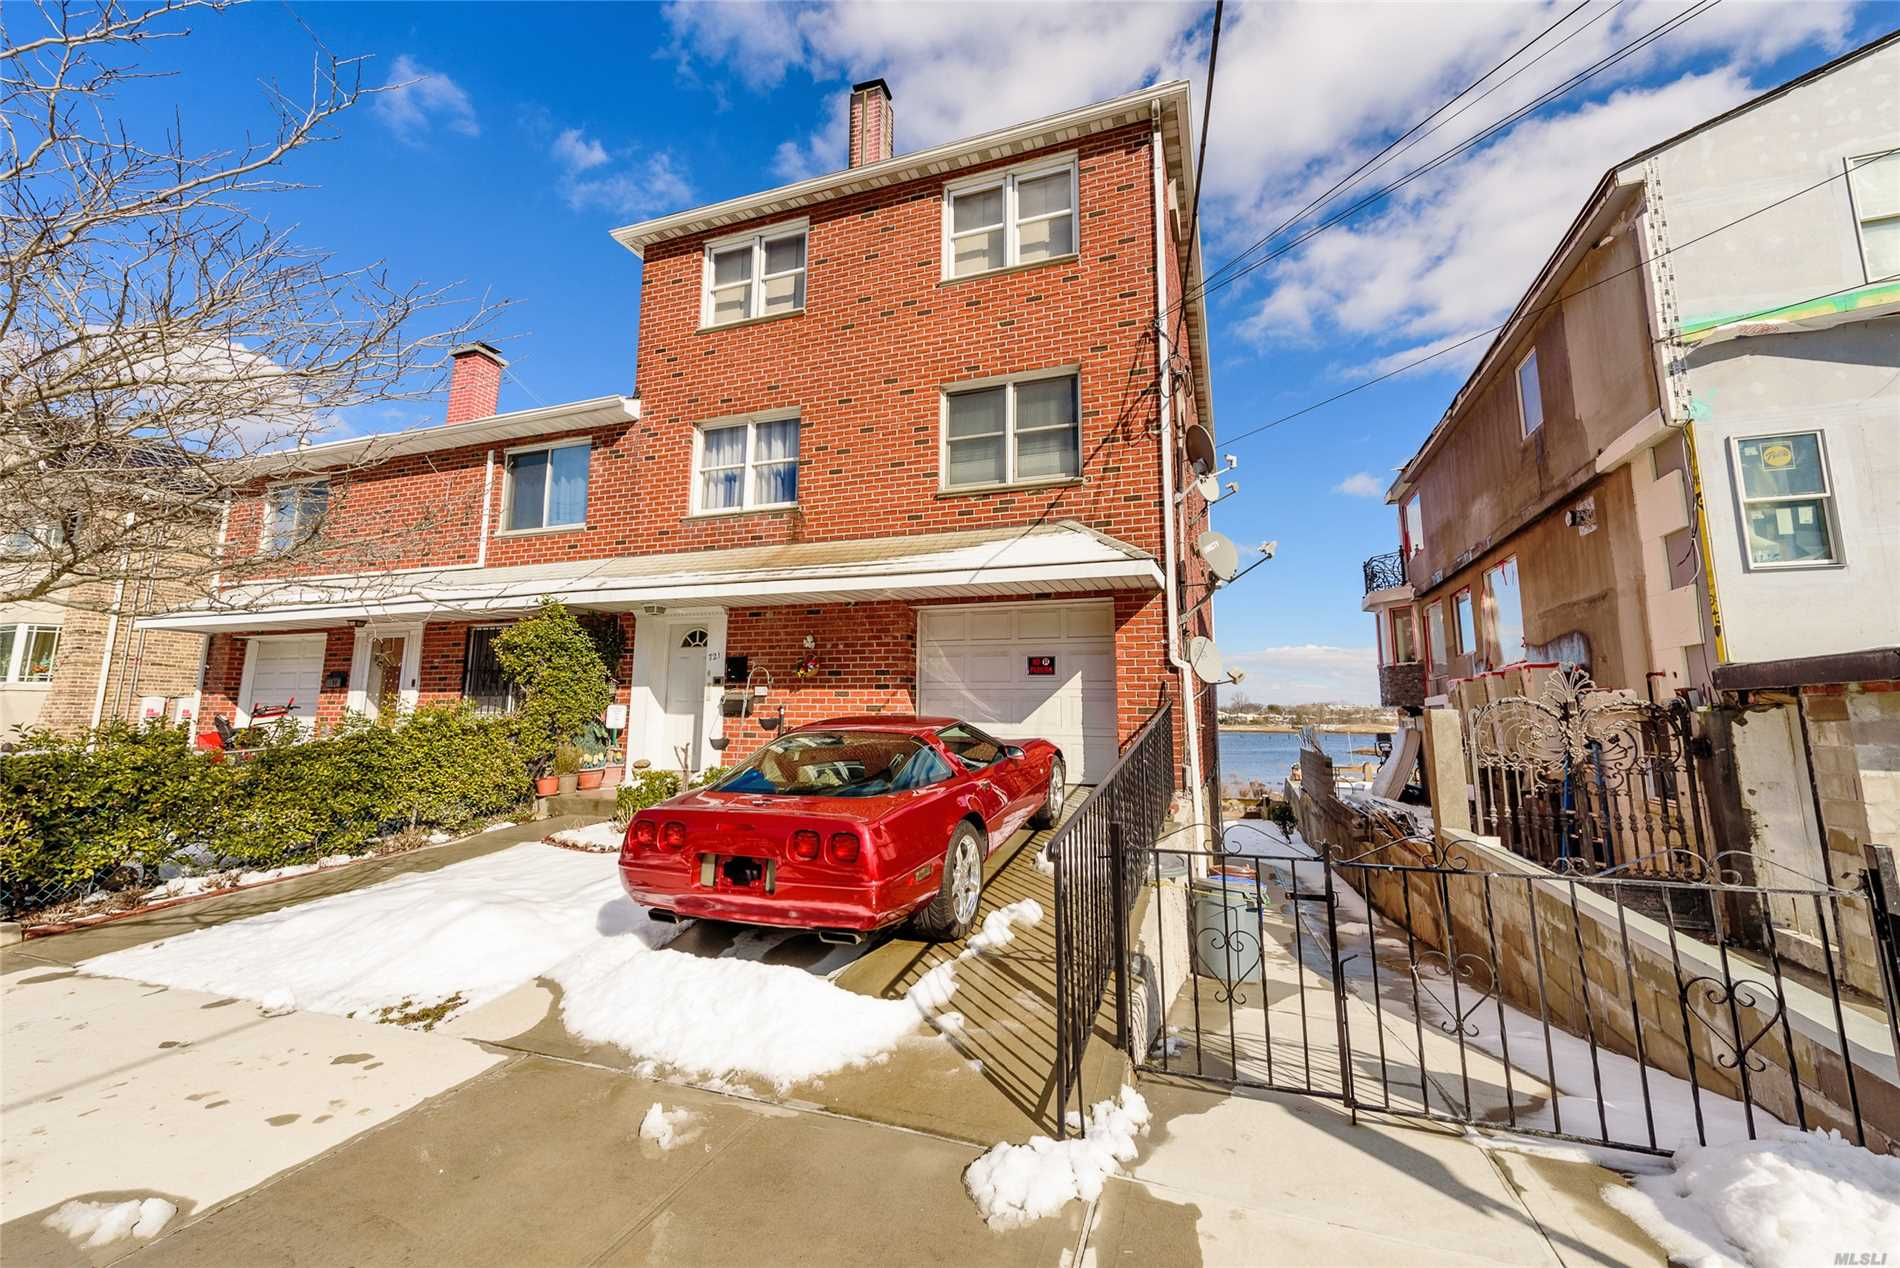 Rare opportunity!!!! ALL BRICK WATERFRONT 3FAM with a full finished basement which has separate rear walk in entrance. Very well maintained by the tenants this house also includes an ATT garage, hardwood floors and multimillion dollar water and bridge views from the backyard and LR windows. House is NOT located in flood zone